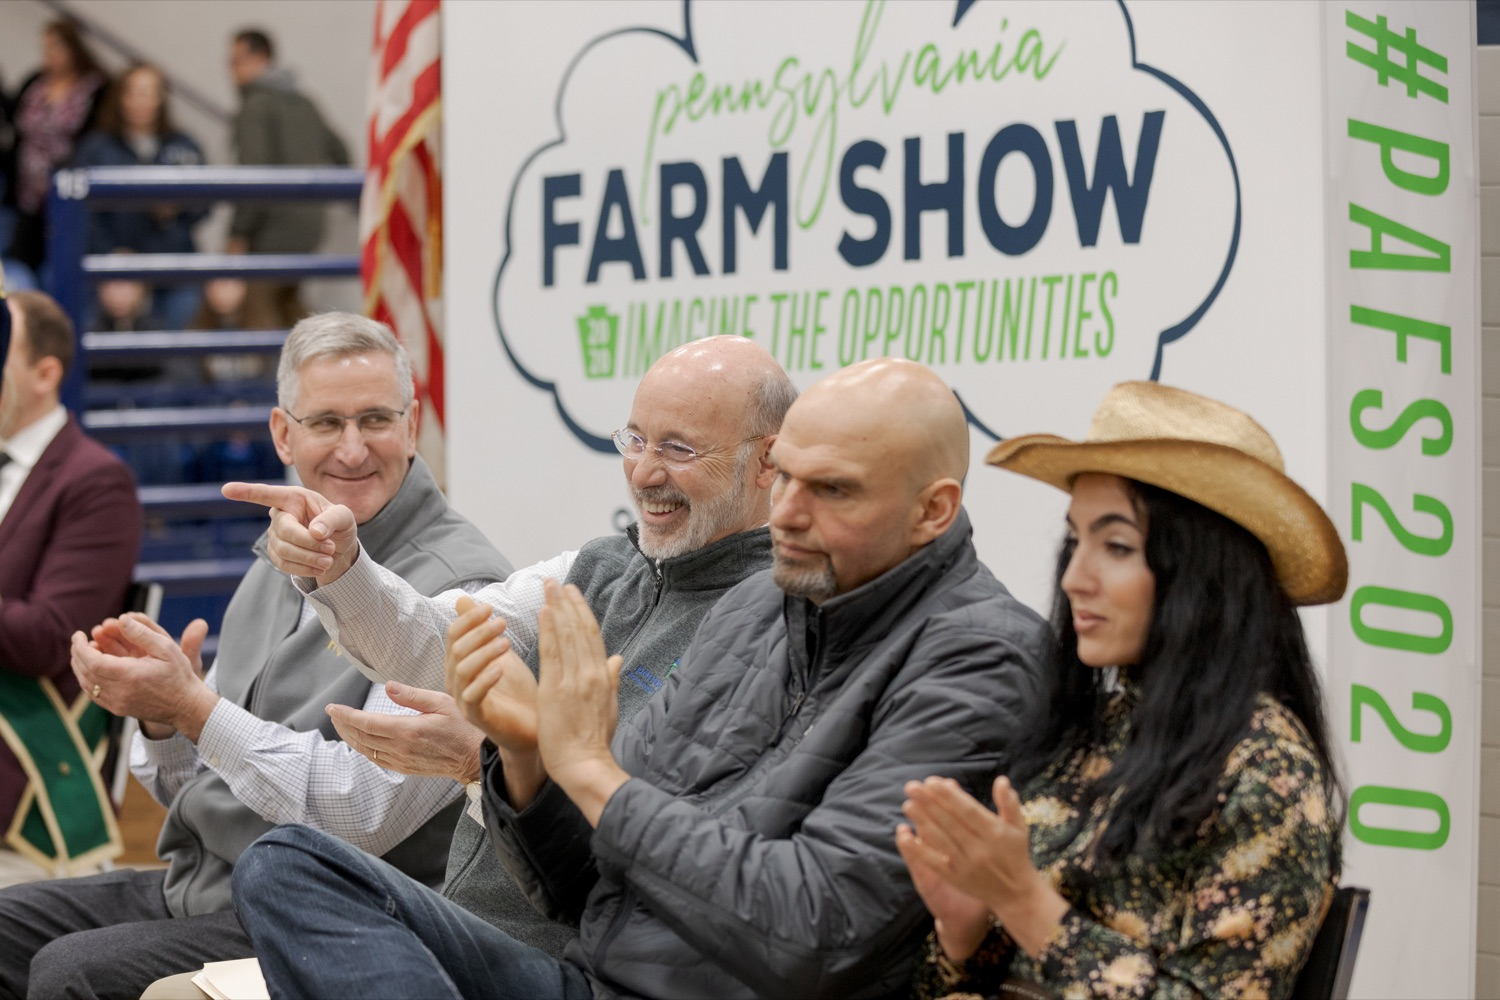 """<a href=""""http://filesource.abacast.com/commonwealthofpa/photo/17648_AGRIC_Opening_Ceremonies_NK_001.JPG"""" target=""""_blank"""">⇣Download Photo<br></a>From left; Pennsylvania Department of Agriculture Secretary Russell Redding; Pennsylvania Governor Tom Wolf; Pennsylvania Lt. Governor John Fetterman; and Gisele Fetterman, Pennsylvania's second lady, sit together during the kick-off of the 2020 Pennsylvania Farm Show on Saturday, January 4, 2020."""